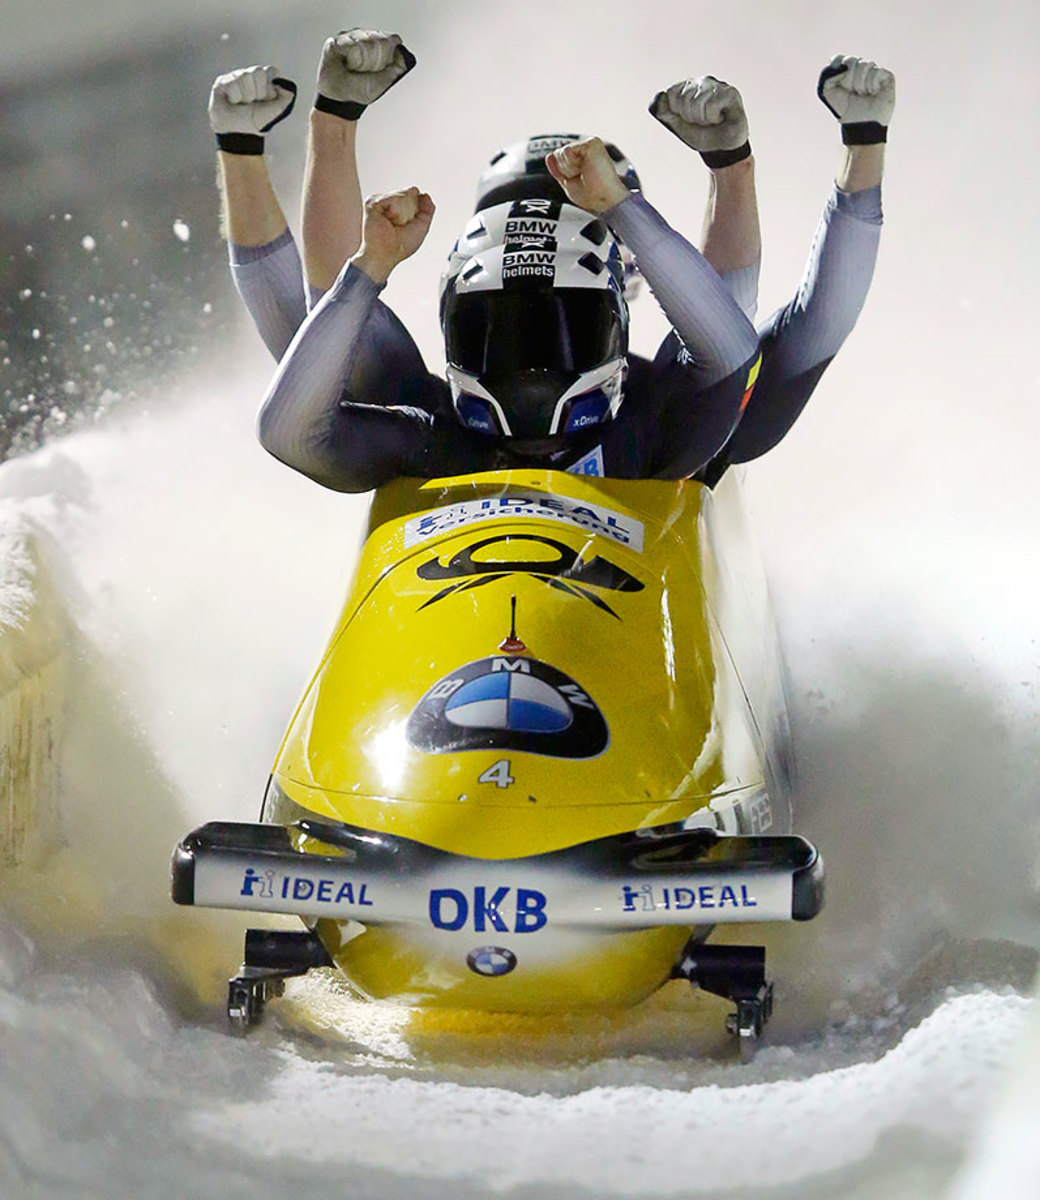 2016-0116-four-man-bobsled-World-Cup-Nico-Walther.jpg